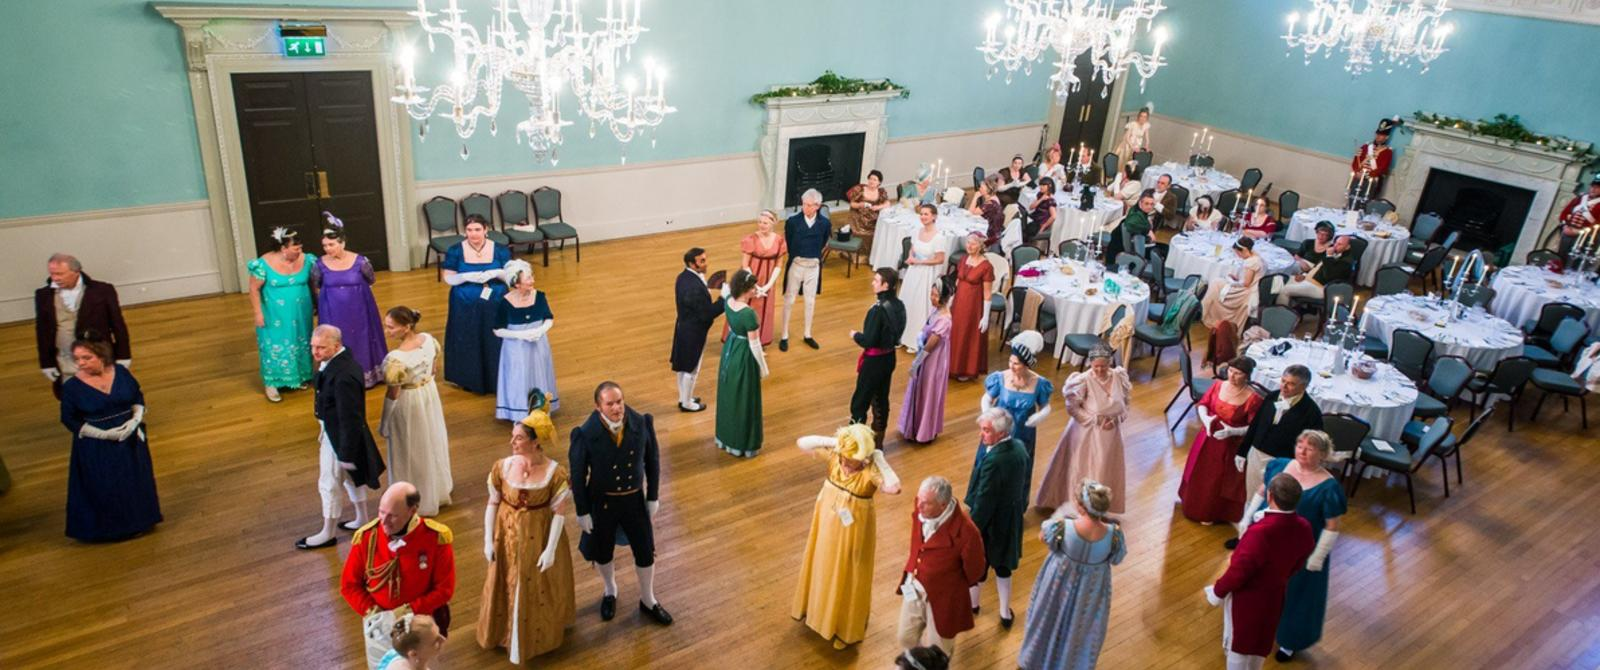 Image: Jane Austen Dancers at the Assembly Rooms